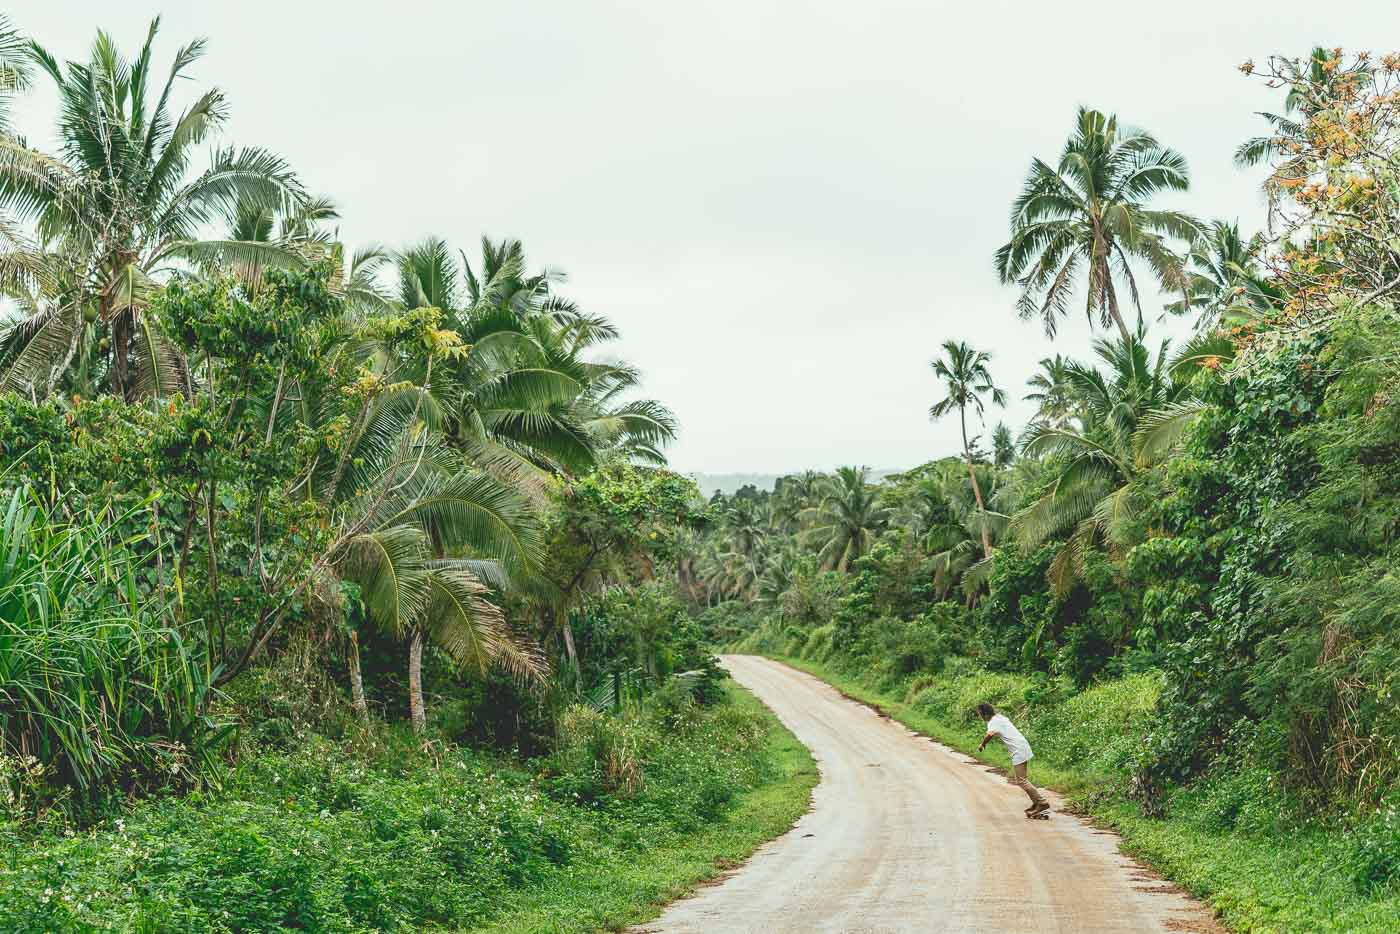 Photographer Stefan Haworth dodging potholes and skating in Vava'u Tonga